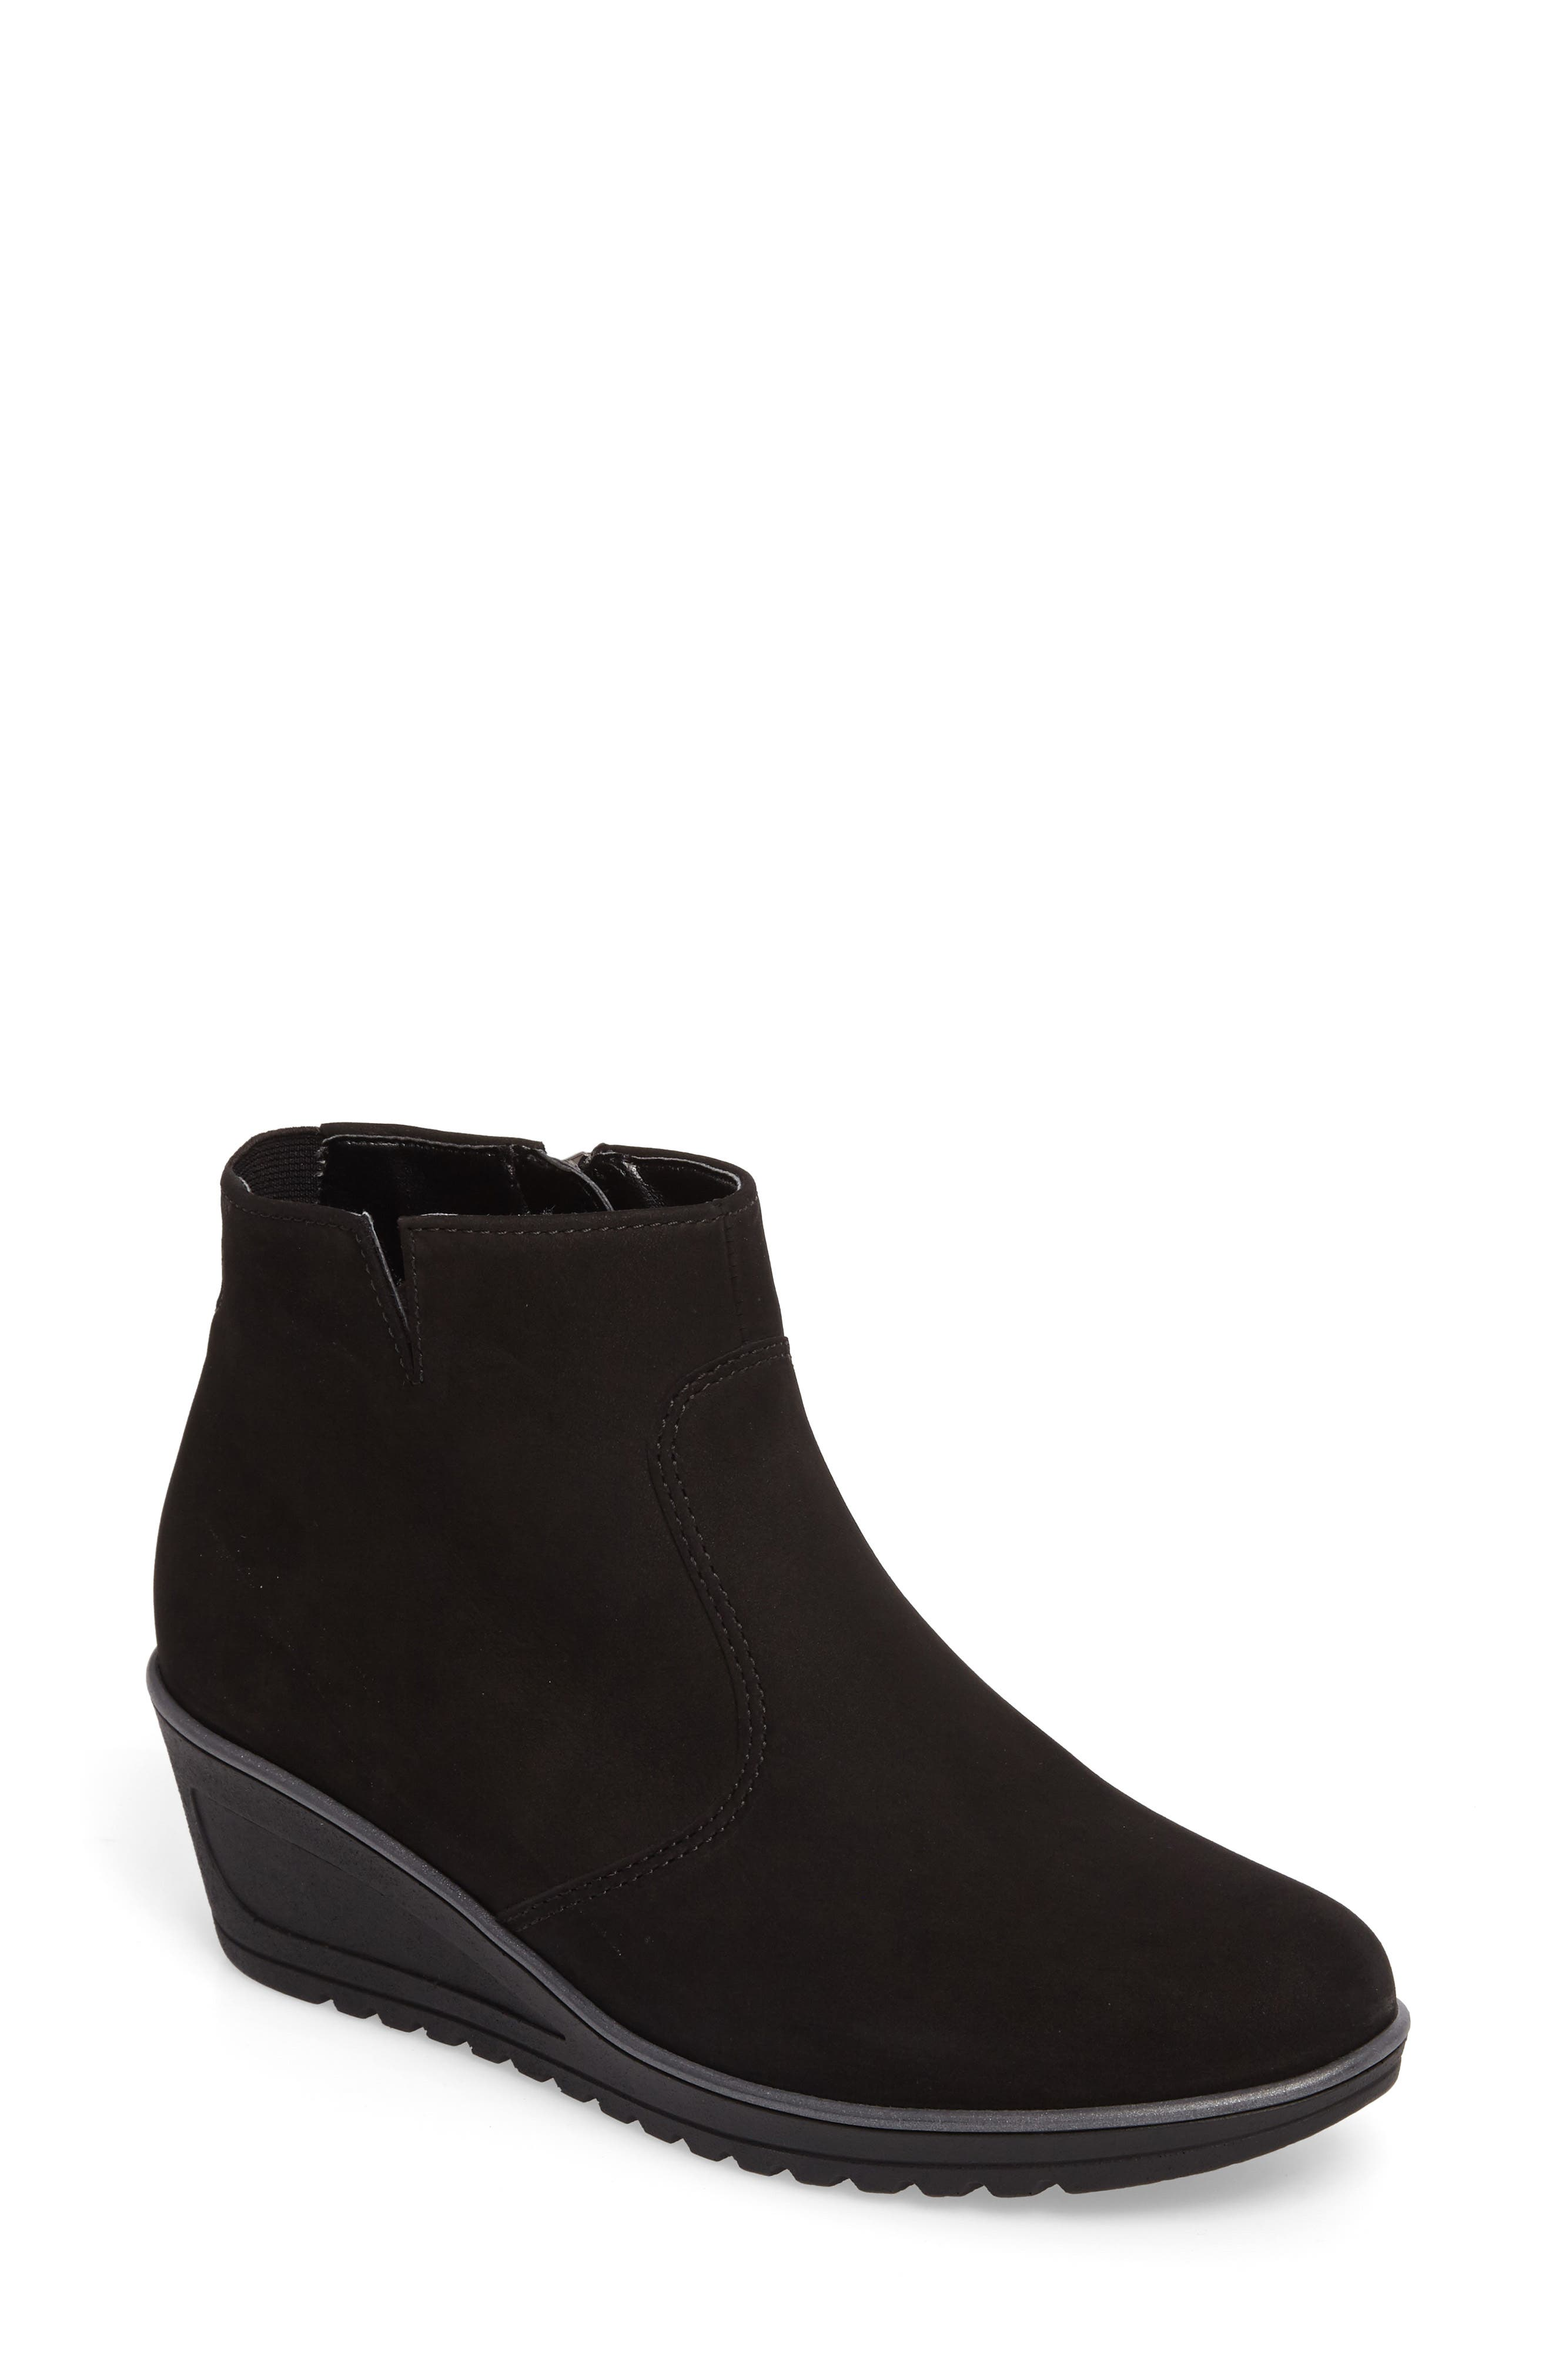 Hessa Wedge Bootie,                         Main,                         color, BLACK LEATHER